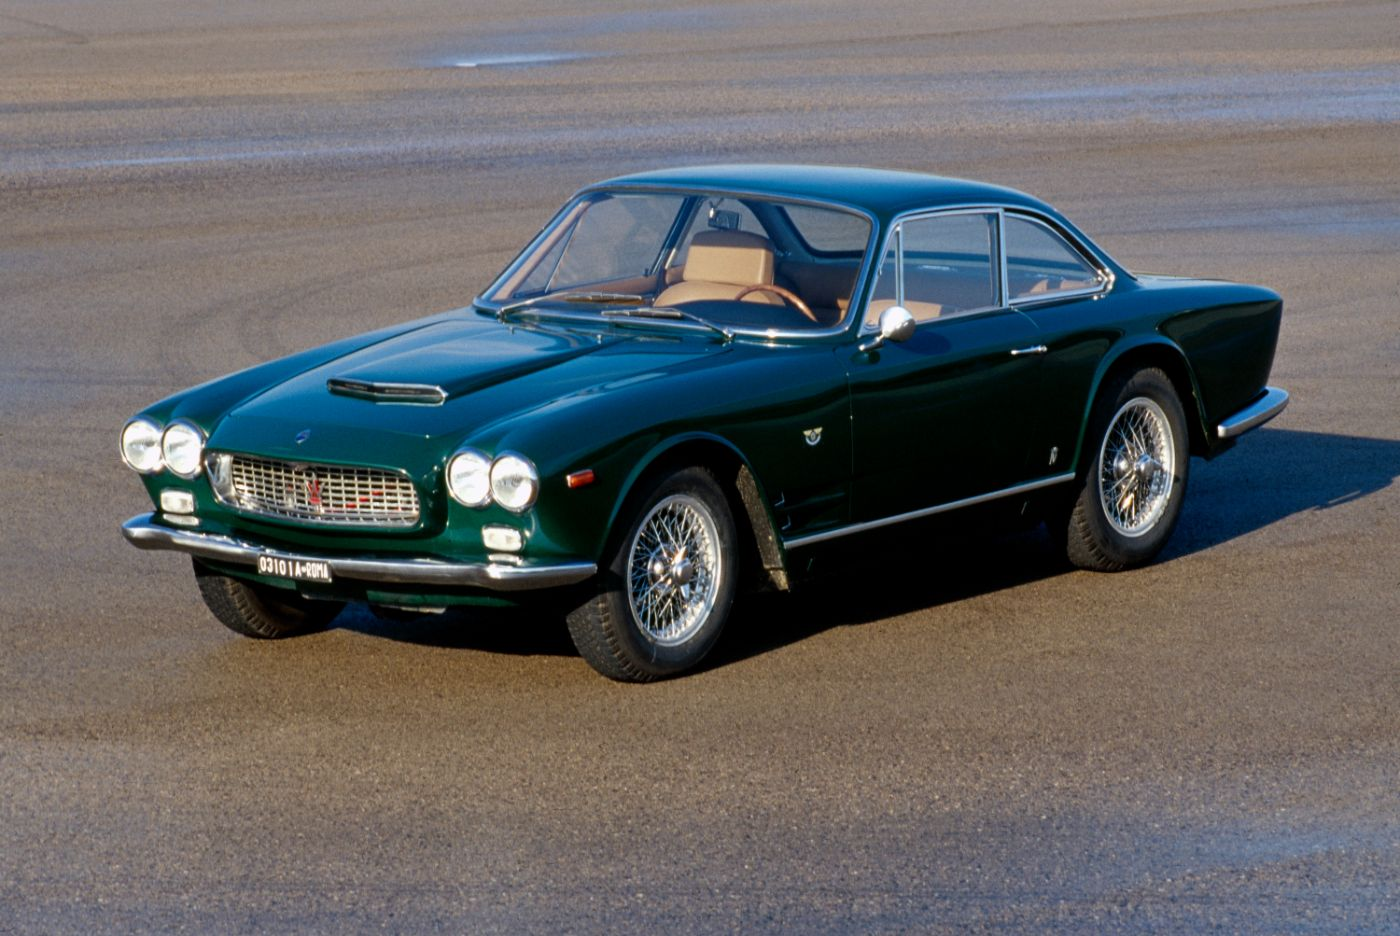 1962 Maserati Sebring - First Series - exterior view of the classic car model